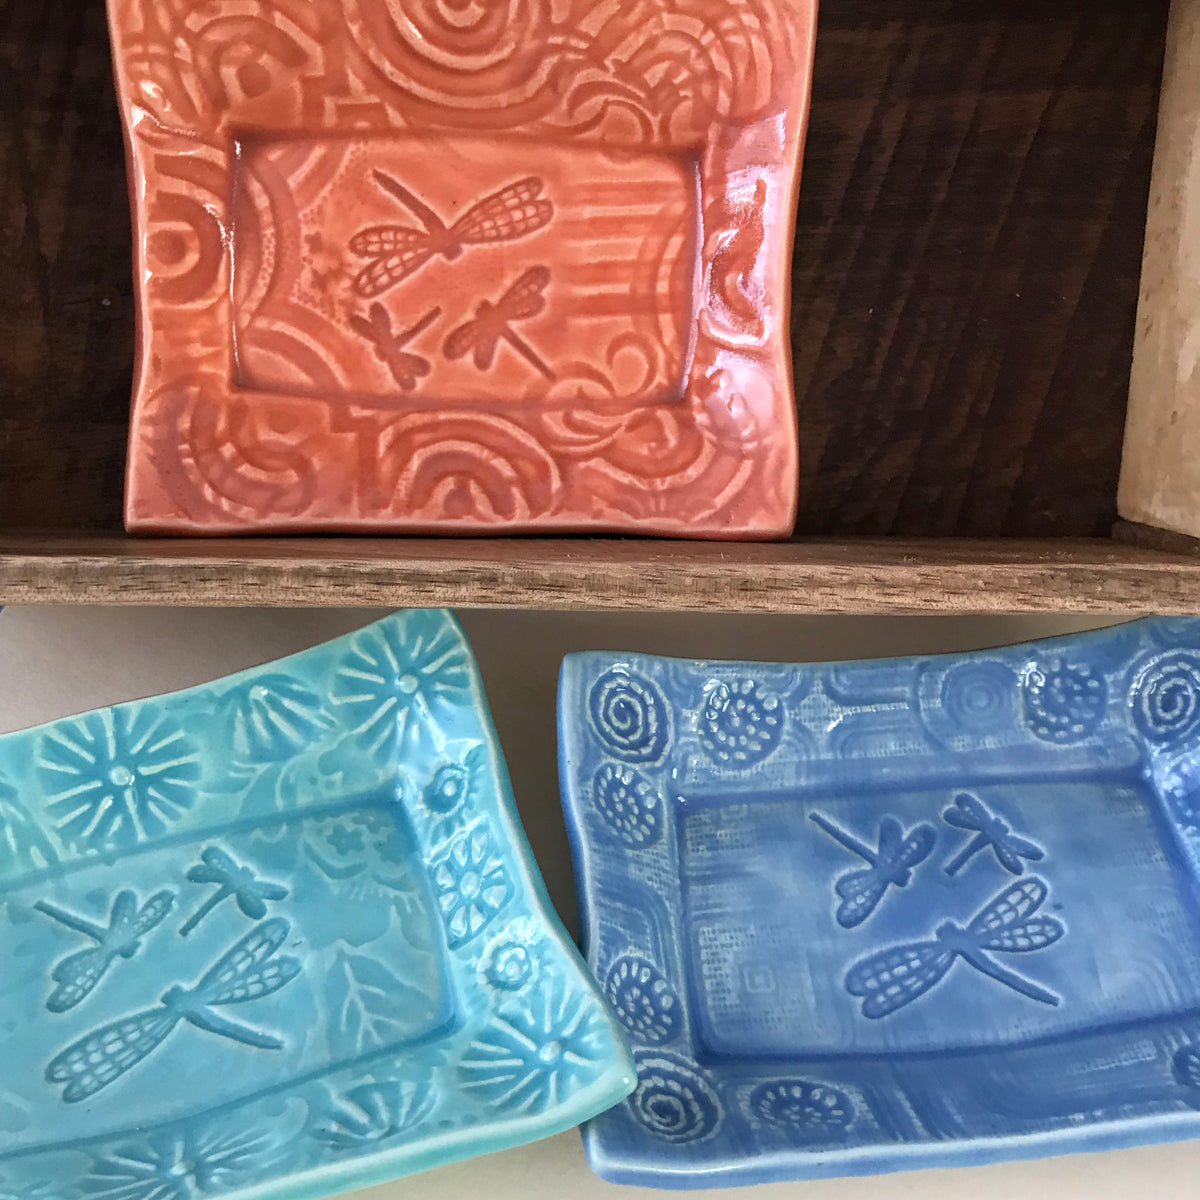 Our Dragonfly Soap Dishes are handmade and based upon an original design created by Lorraine Oerth.